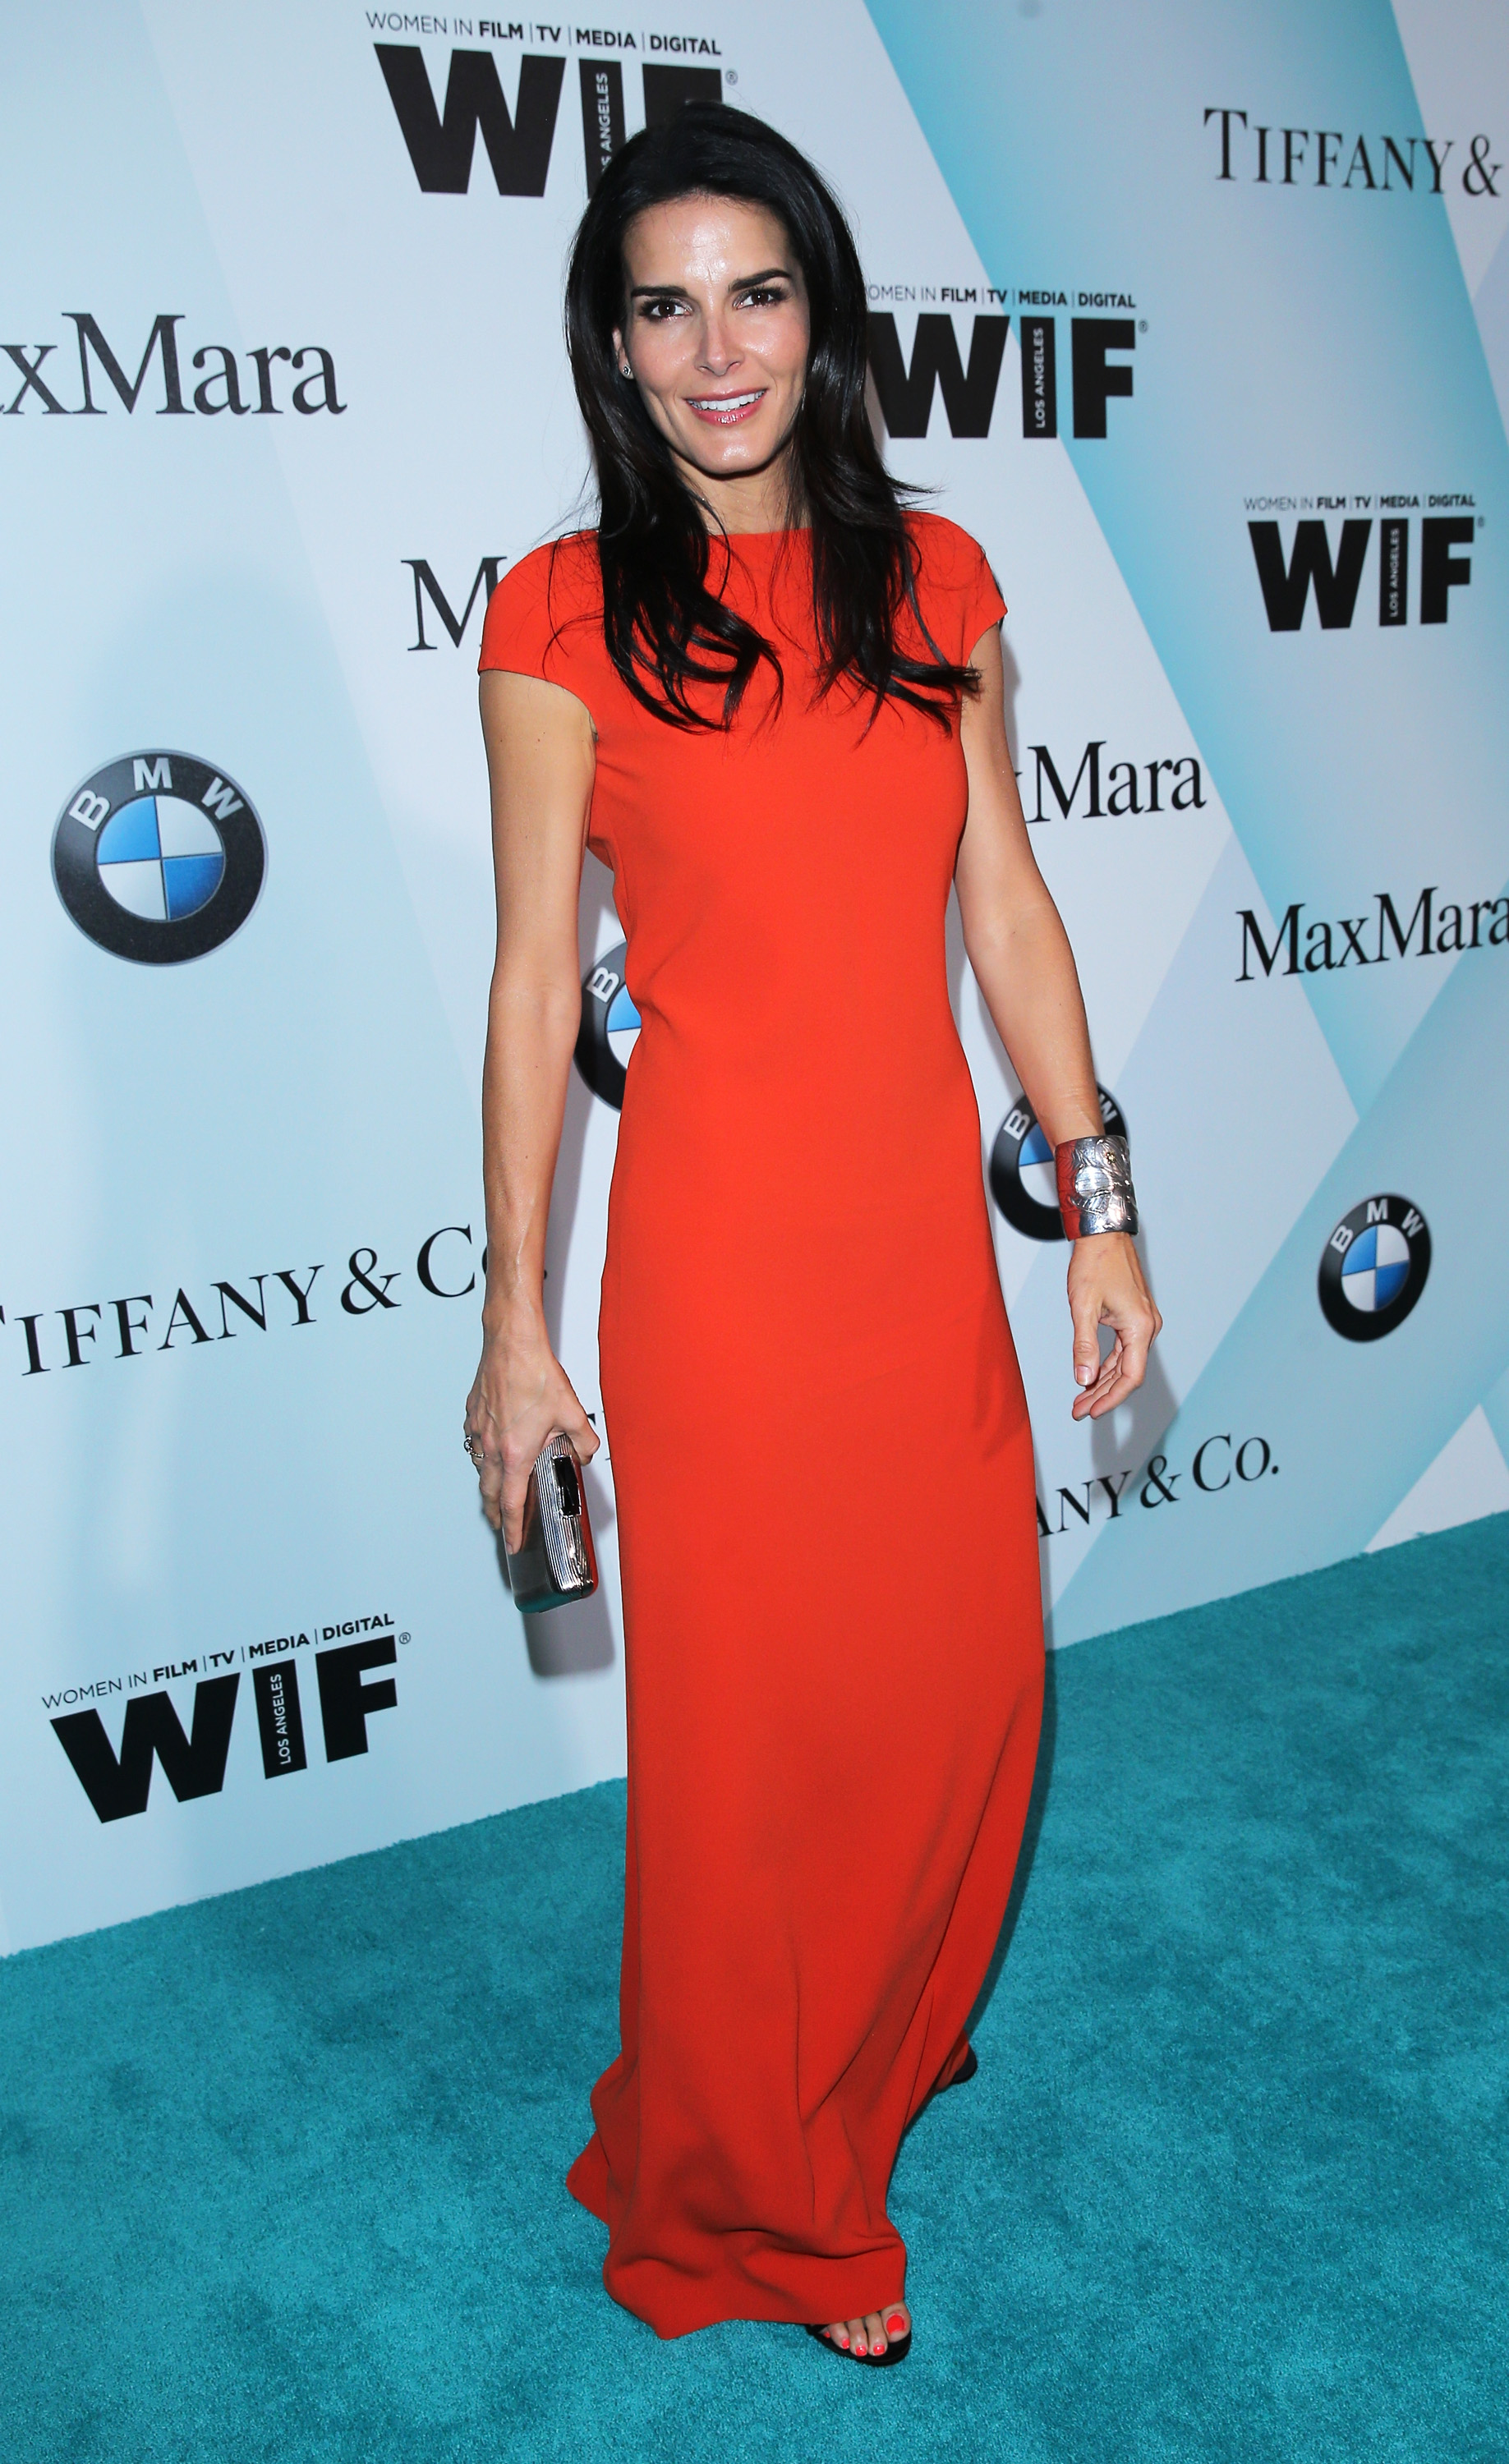 CENTURY CITY, CA - JUNE 16: Actress Angie Harmon attends Women In Film 2015 Crystal + Lucy Awards Presented by Max Mara, BMW of North America, and Tiffany & Co. at the Hyatt Regency Century Plaza on June 16, 2015 in Century City, California.  (Photo by Mark Davis/Getty Images for Women in Film)